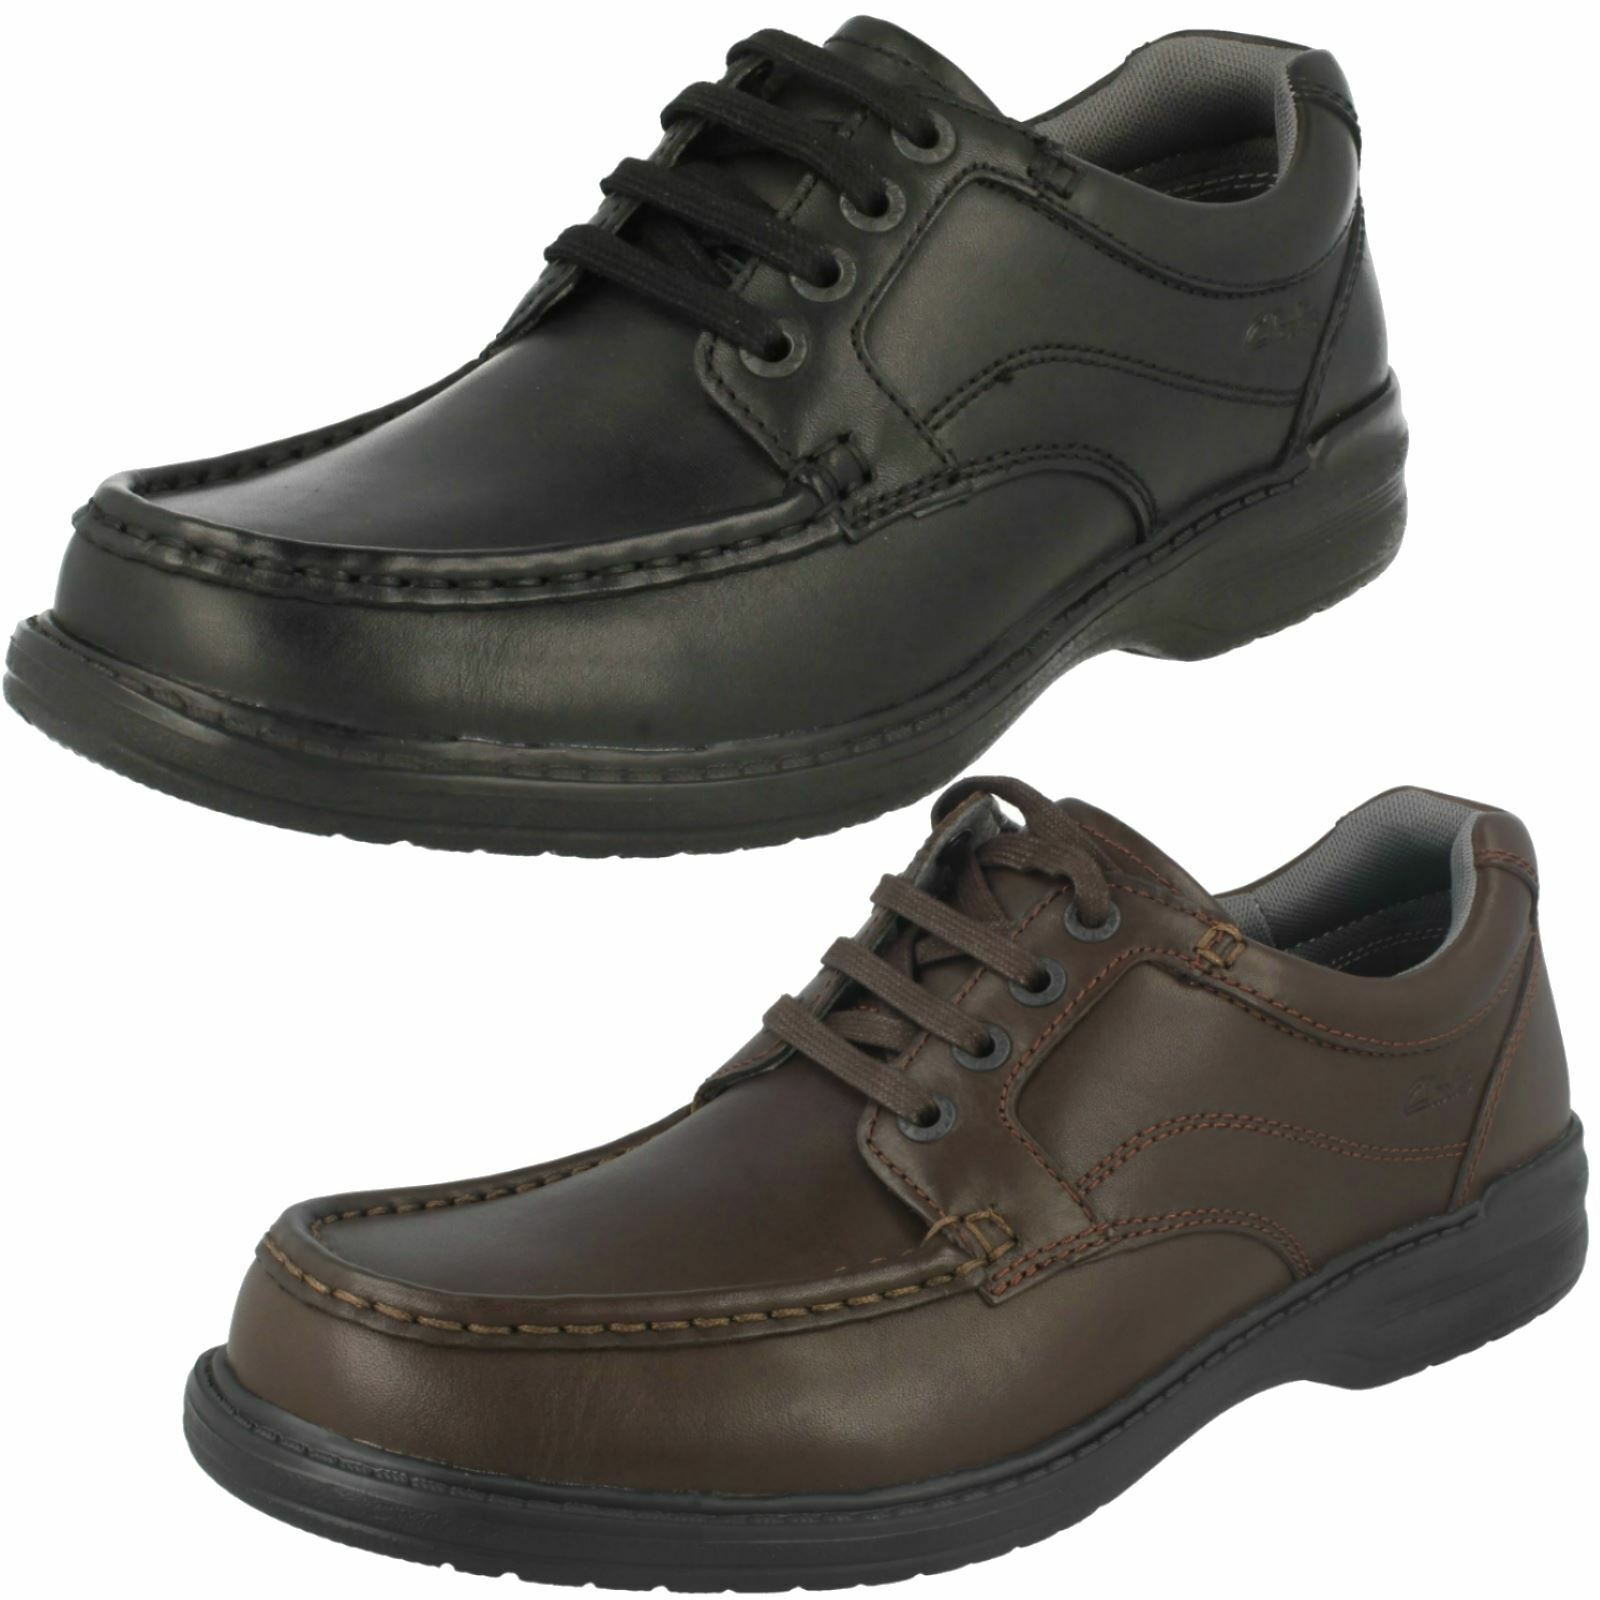 new specials brand new the sale of shoes Mens Clarks Casual Shoes *Keeler Walk*